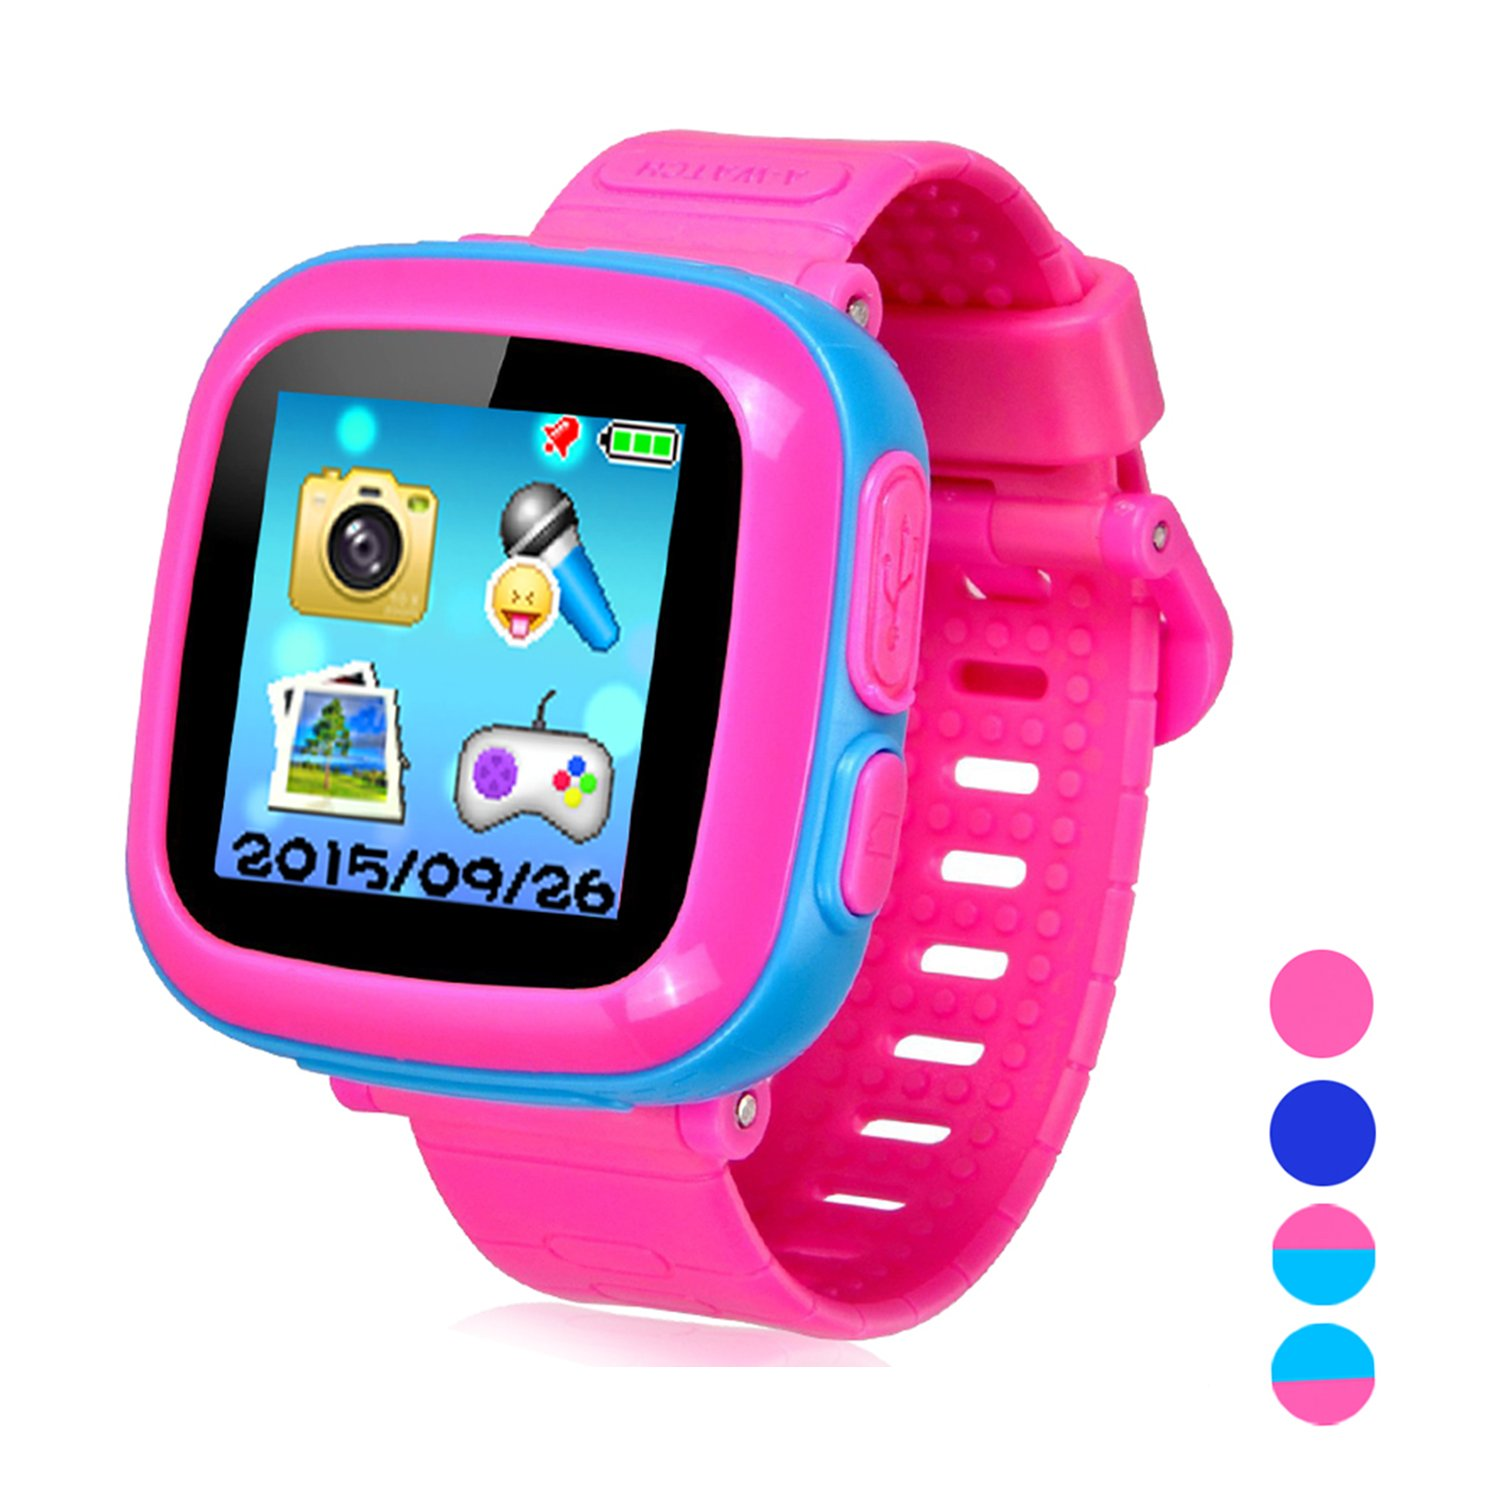 Smart Watch for Kids Girls Boys,Smart Game Watch with Camera Touch Screen Pedometer,Kids Smart Watch Perfect Holiday Birthday Toys Gifts (Joint Blue)